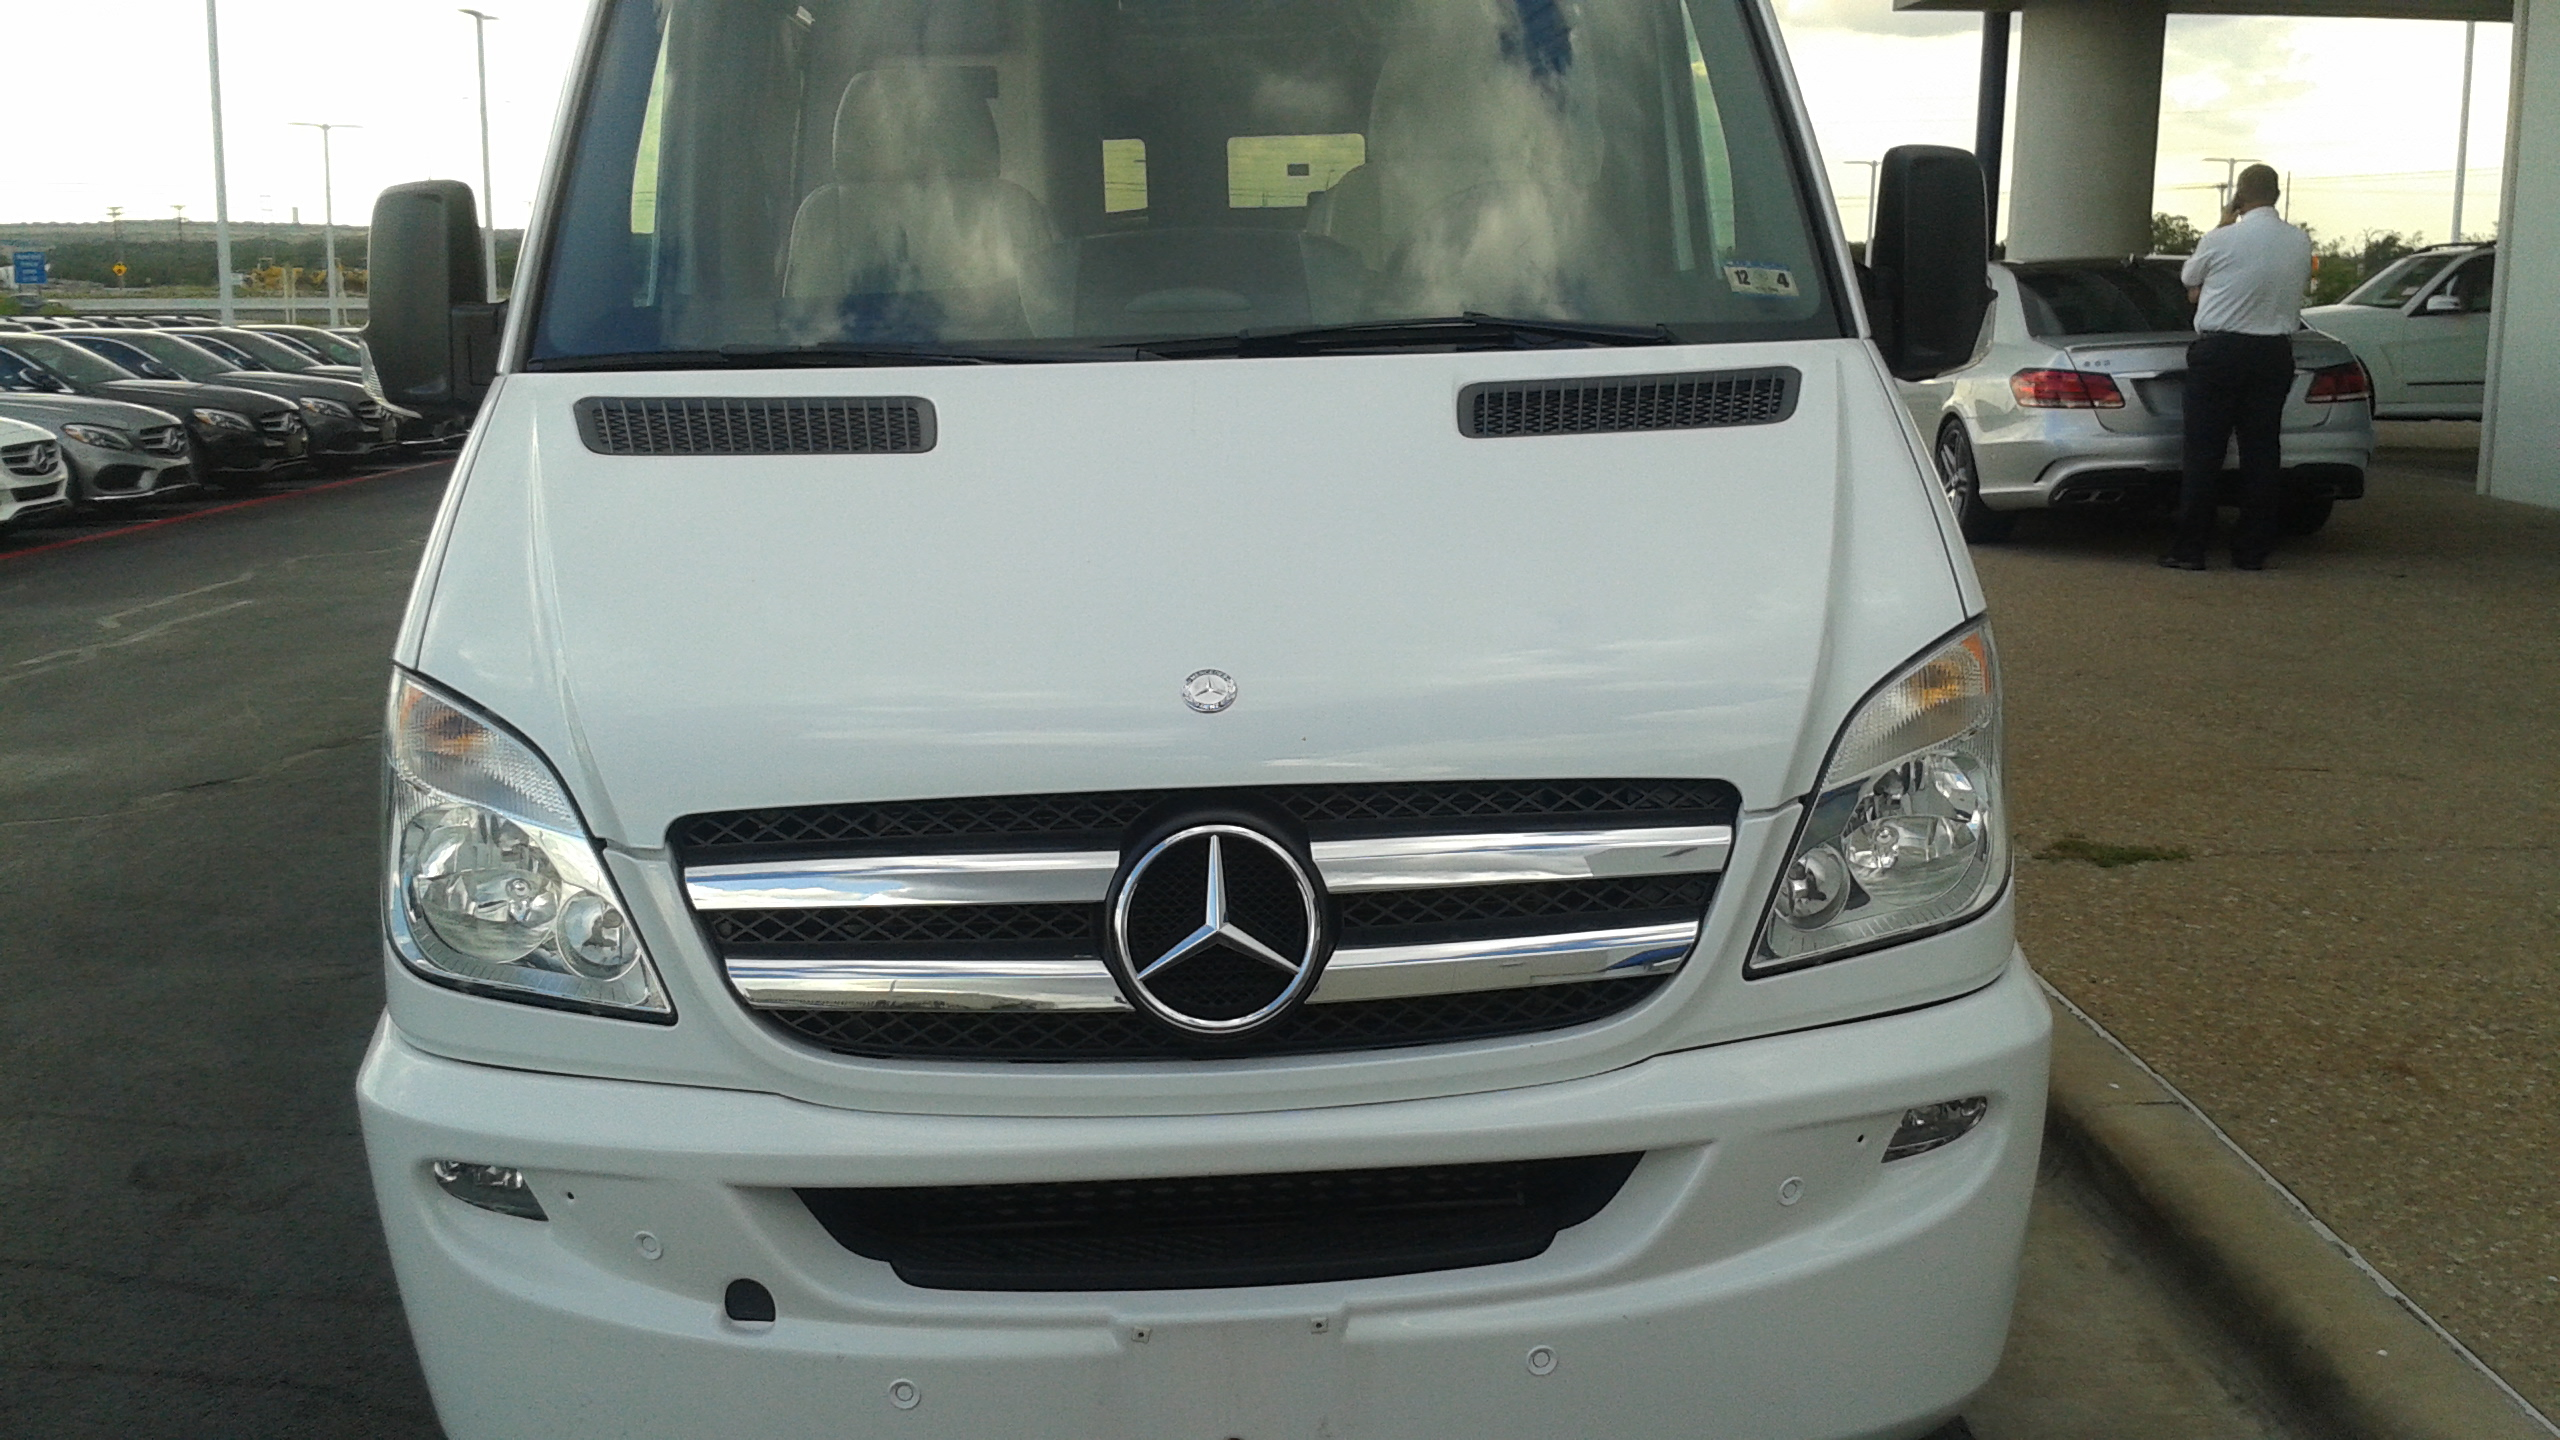 2013 interstate sprinter rvs for sale autos post for Mercedes benz sprinter airstream